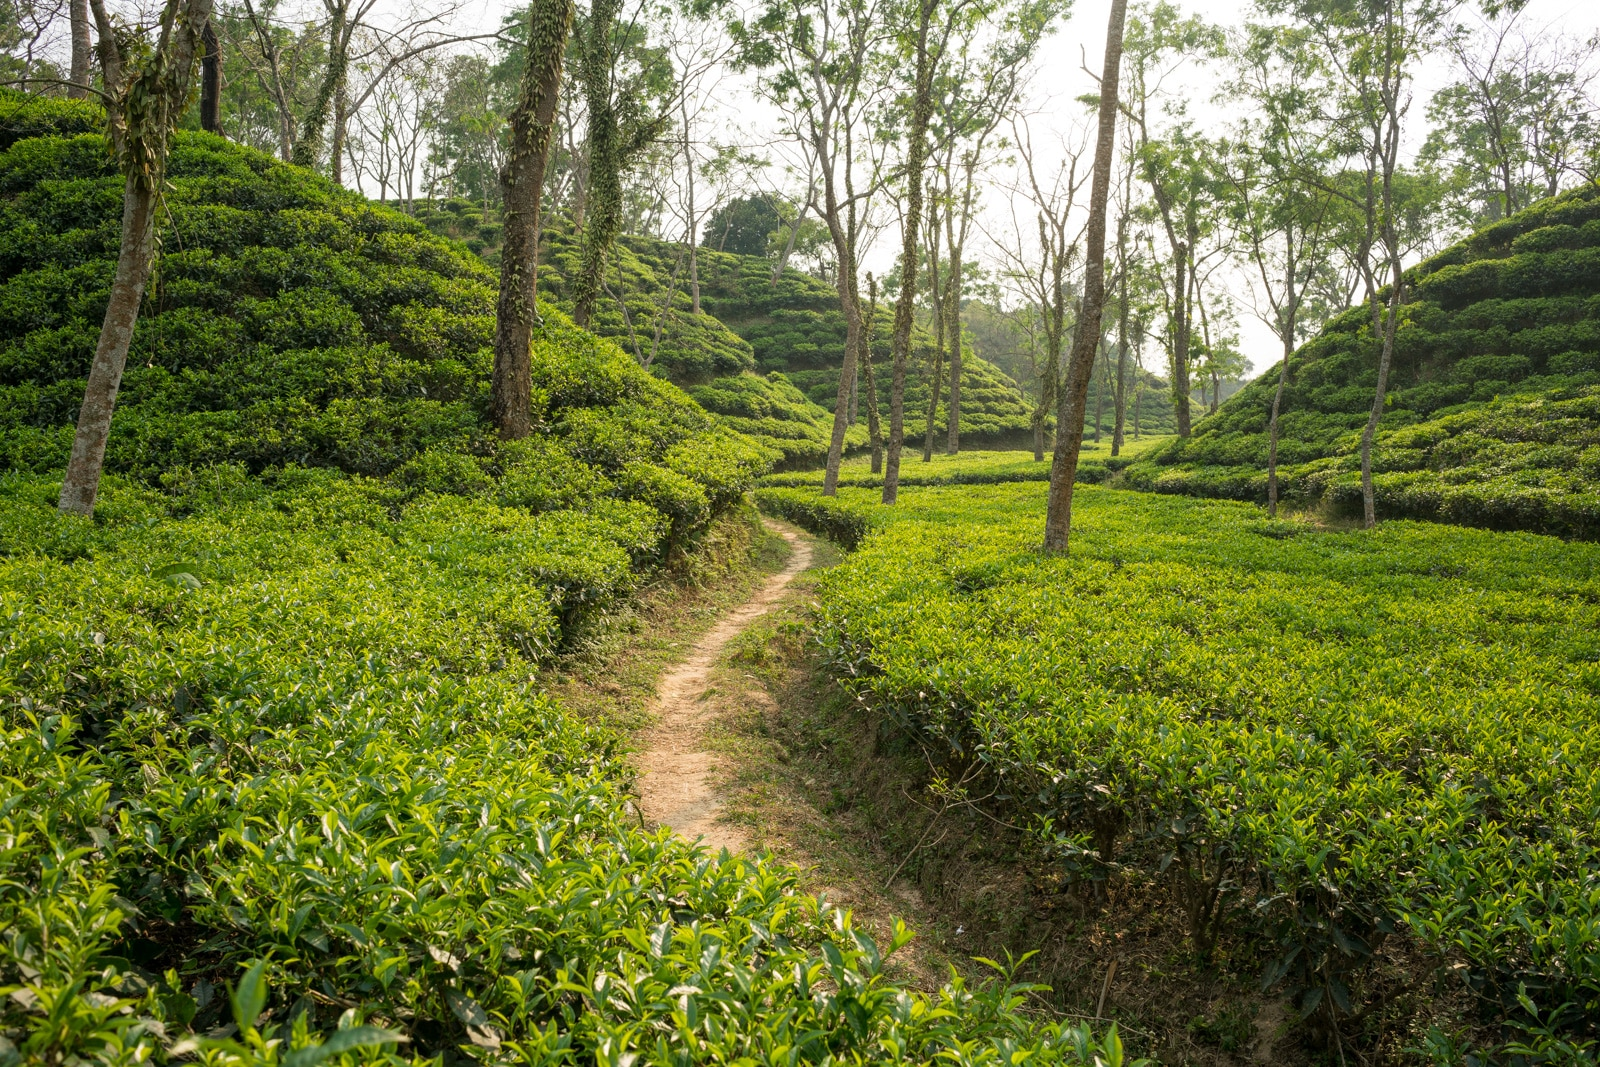 Backpacking in Bangladesh travel guide - Tea hills in Srimangal - Lost With Purpose travel blog